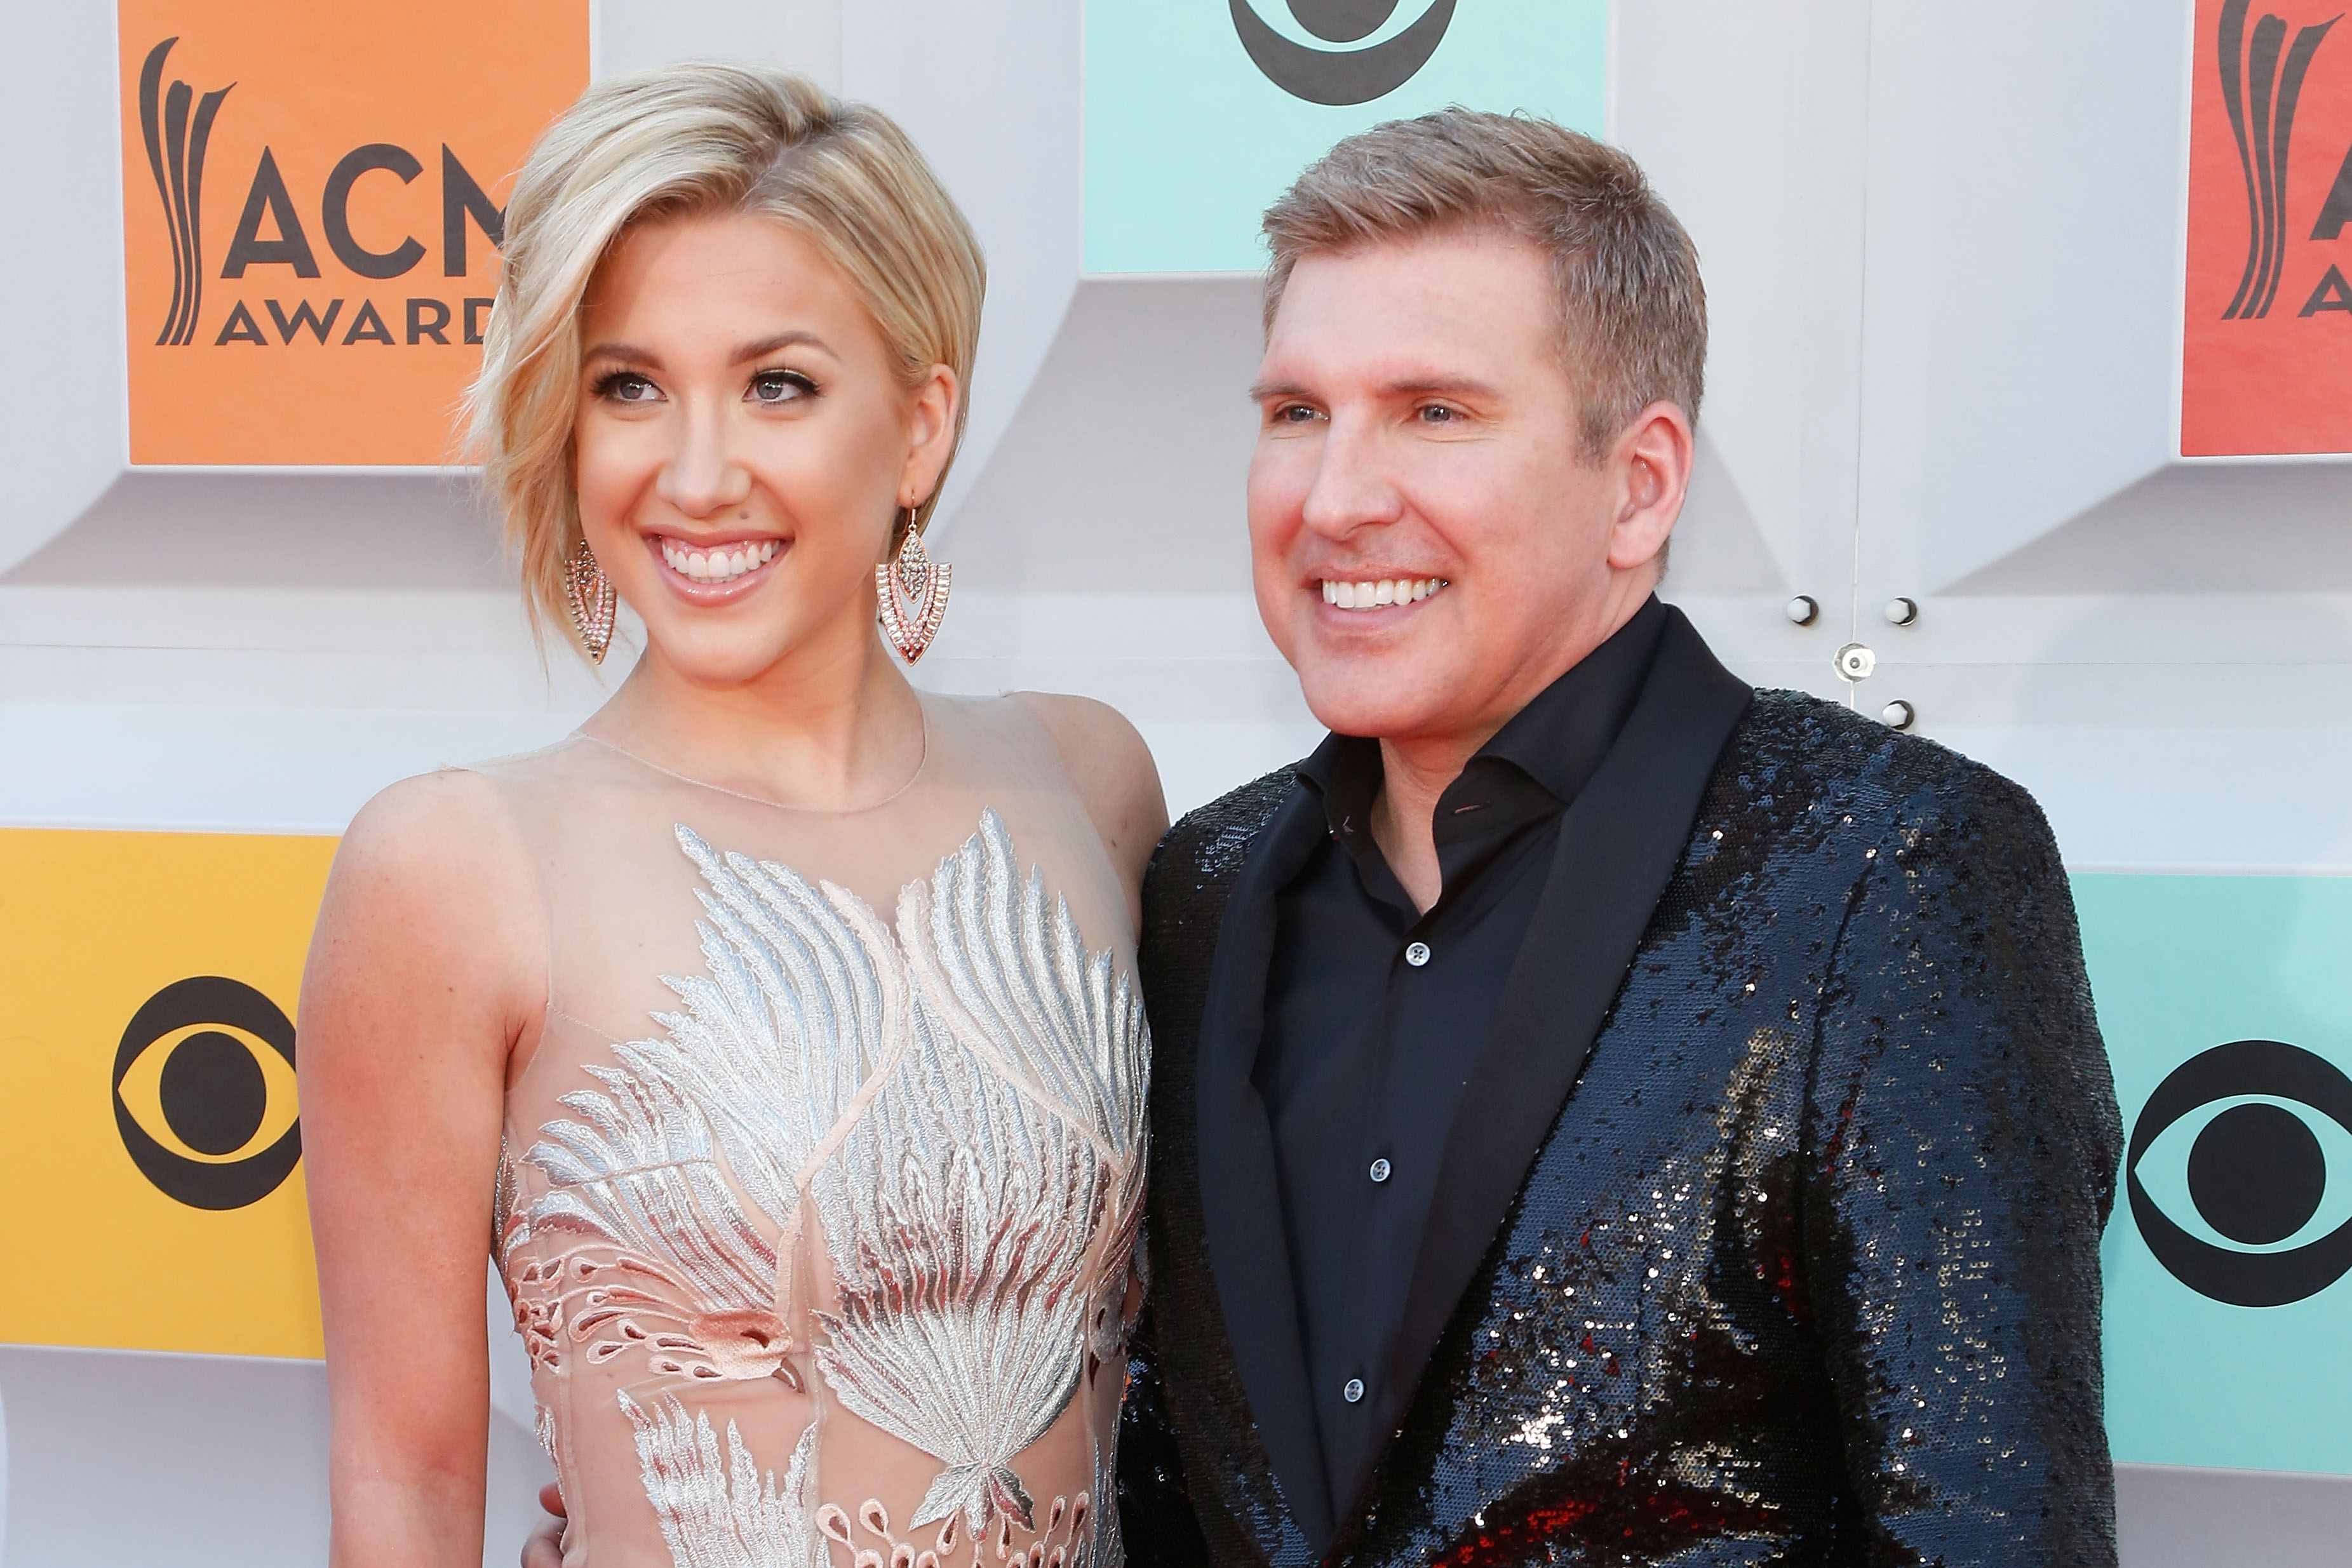 Savannah Chrisley and Todd Chrisley at the 51st Academy of Country Music Awards at MGM Grand Garden Arena on April 3, 2016 in Las Vegas, Nevada | Photo: Getty Images